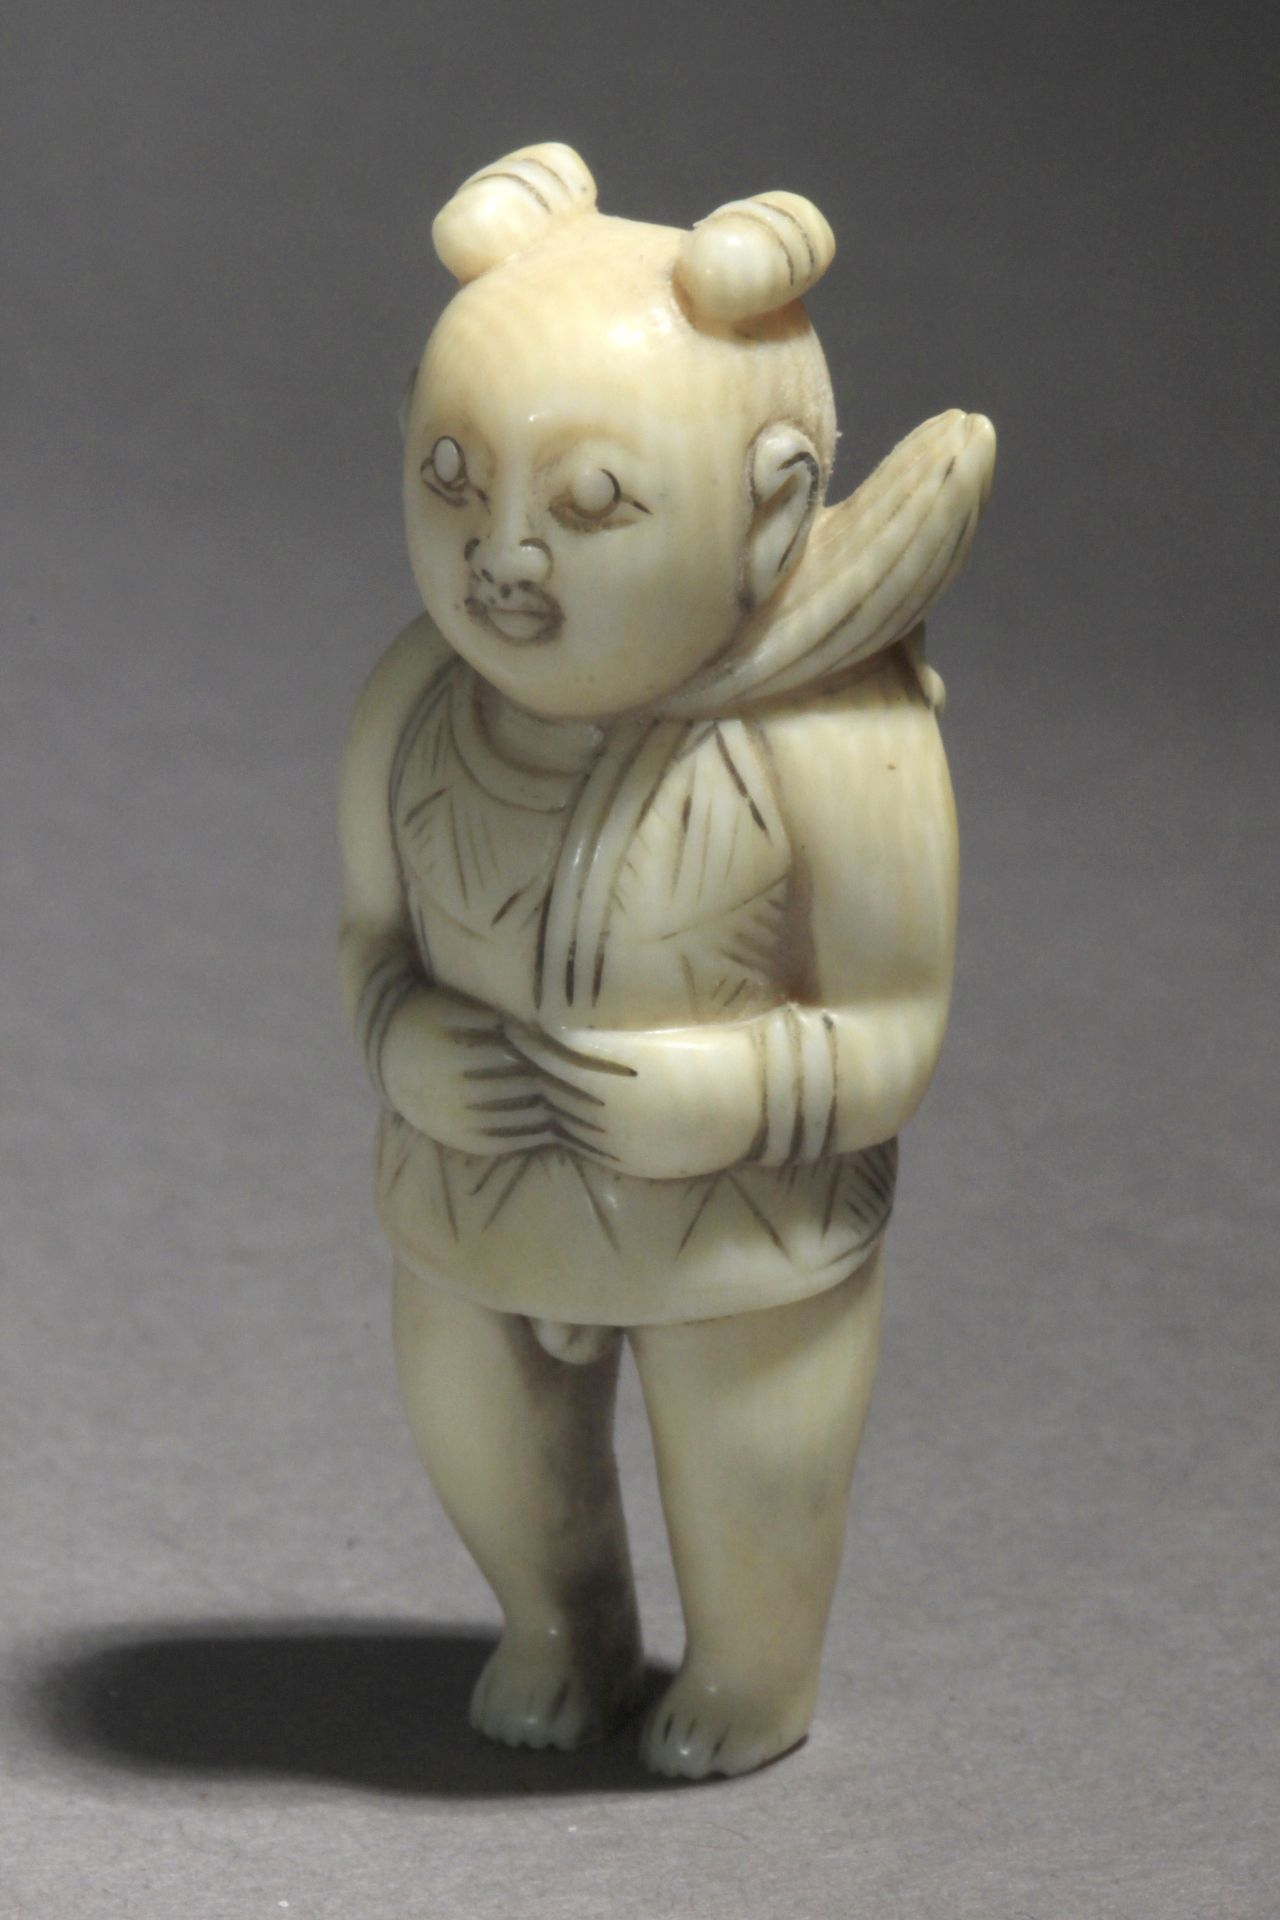 An early 19th century Japanese netsuke from Edo period